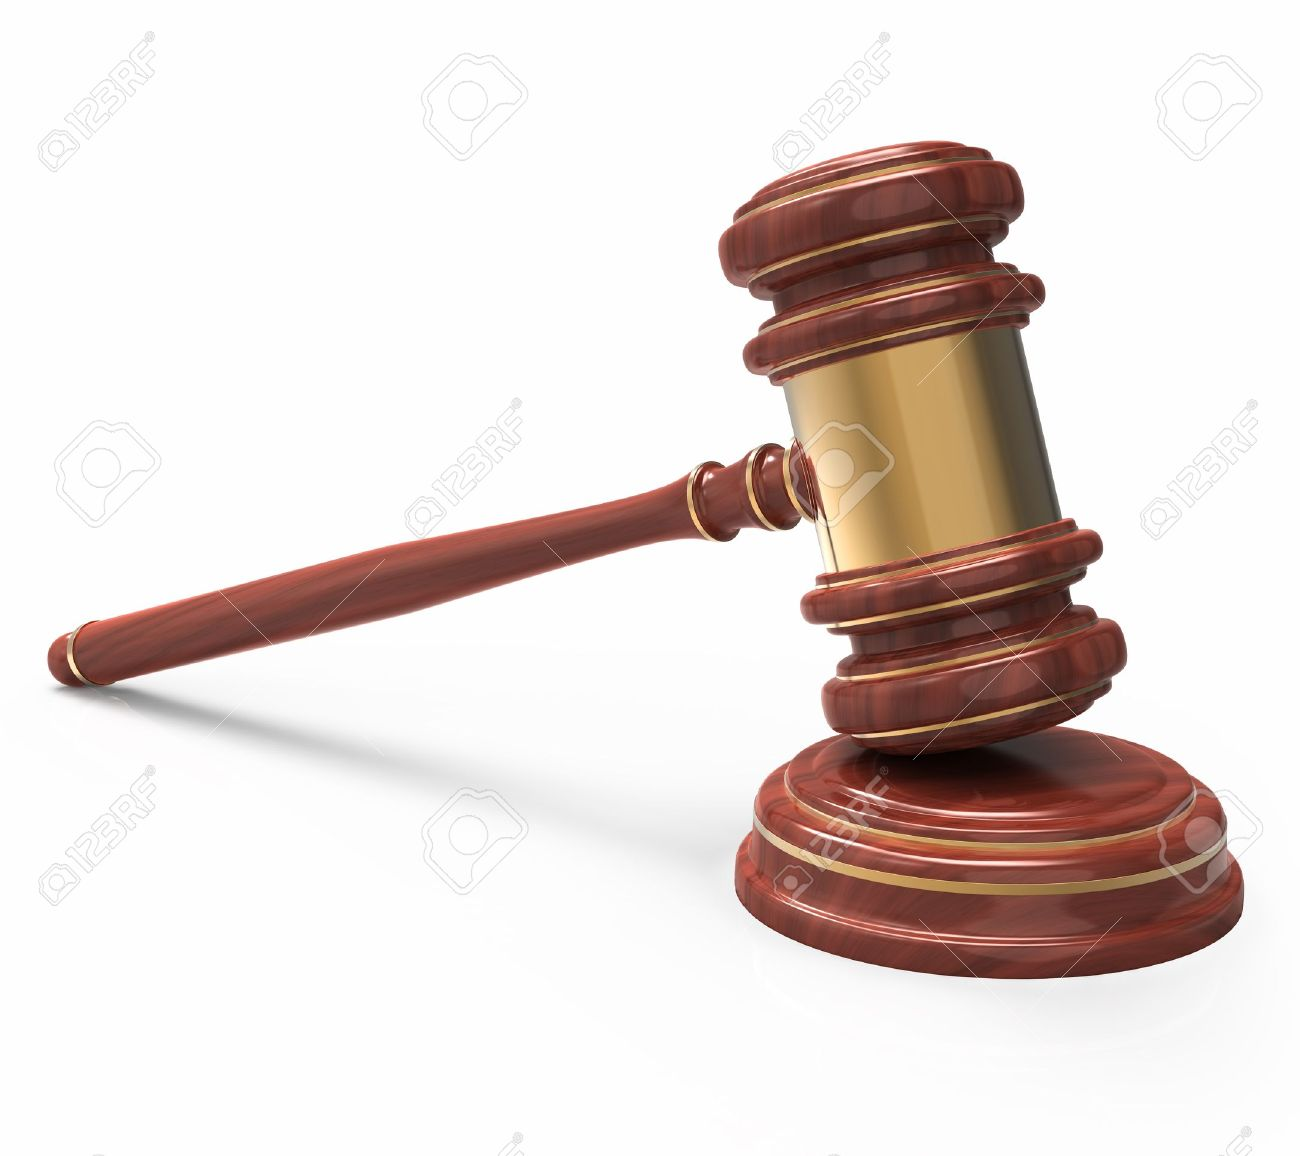 wooden Judge gavel isolated on white background with clipping path. Stock Photo - 13629134